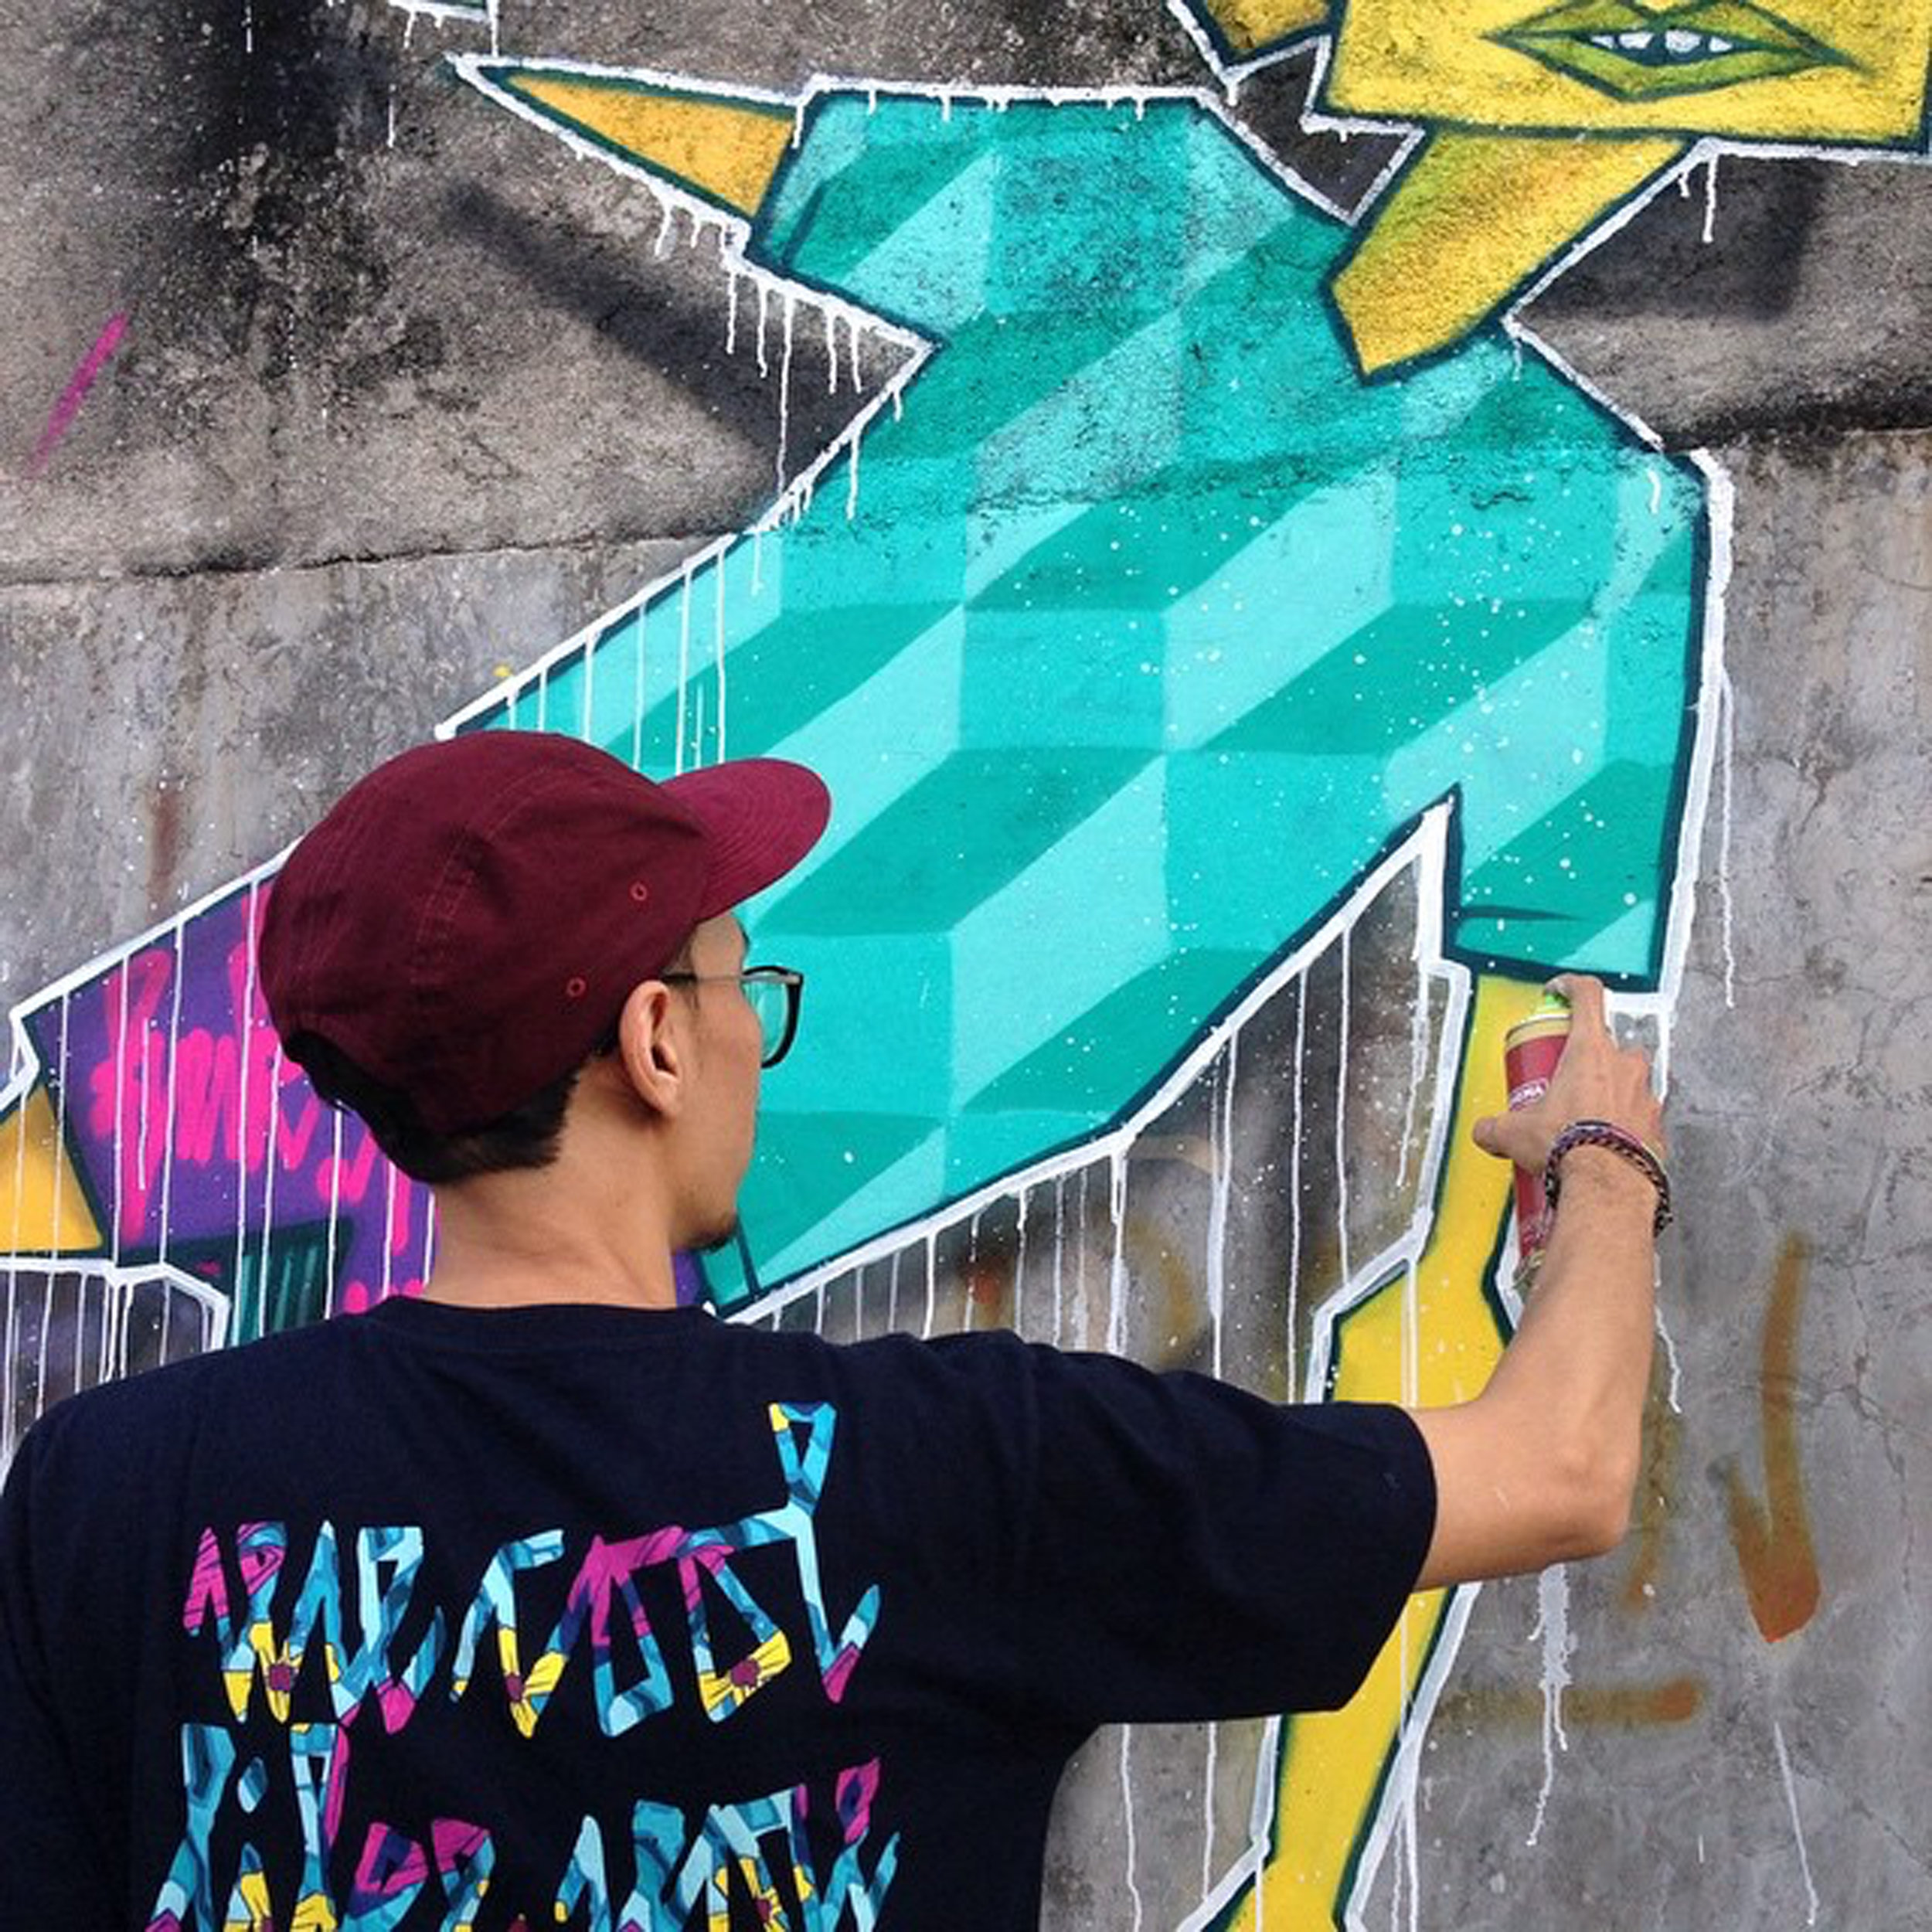 STEREOFLOW (Bandung, Indonesia)